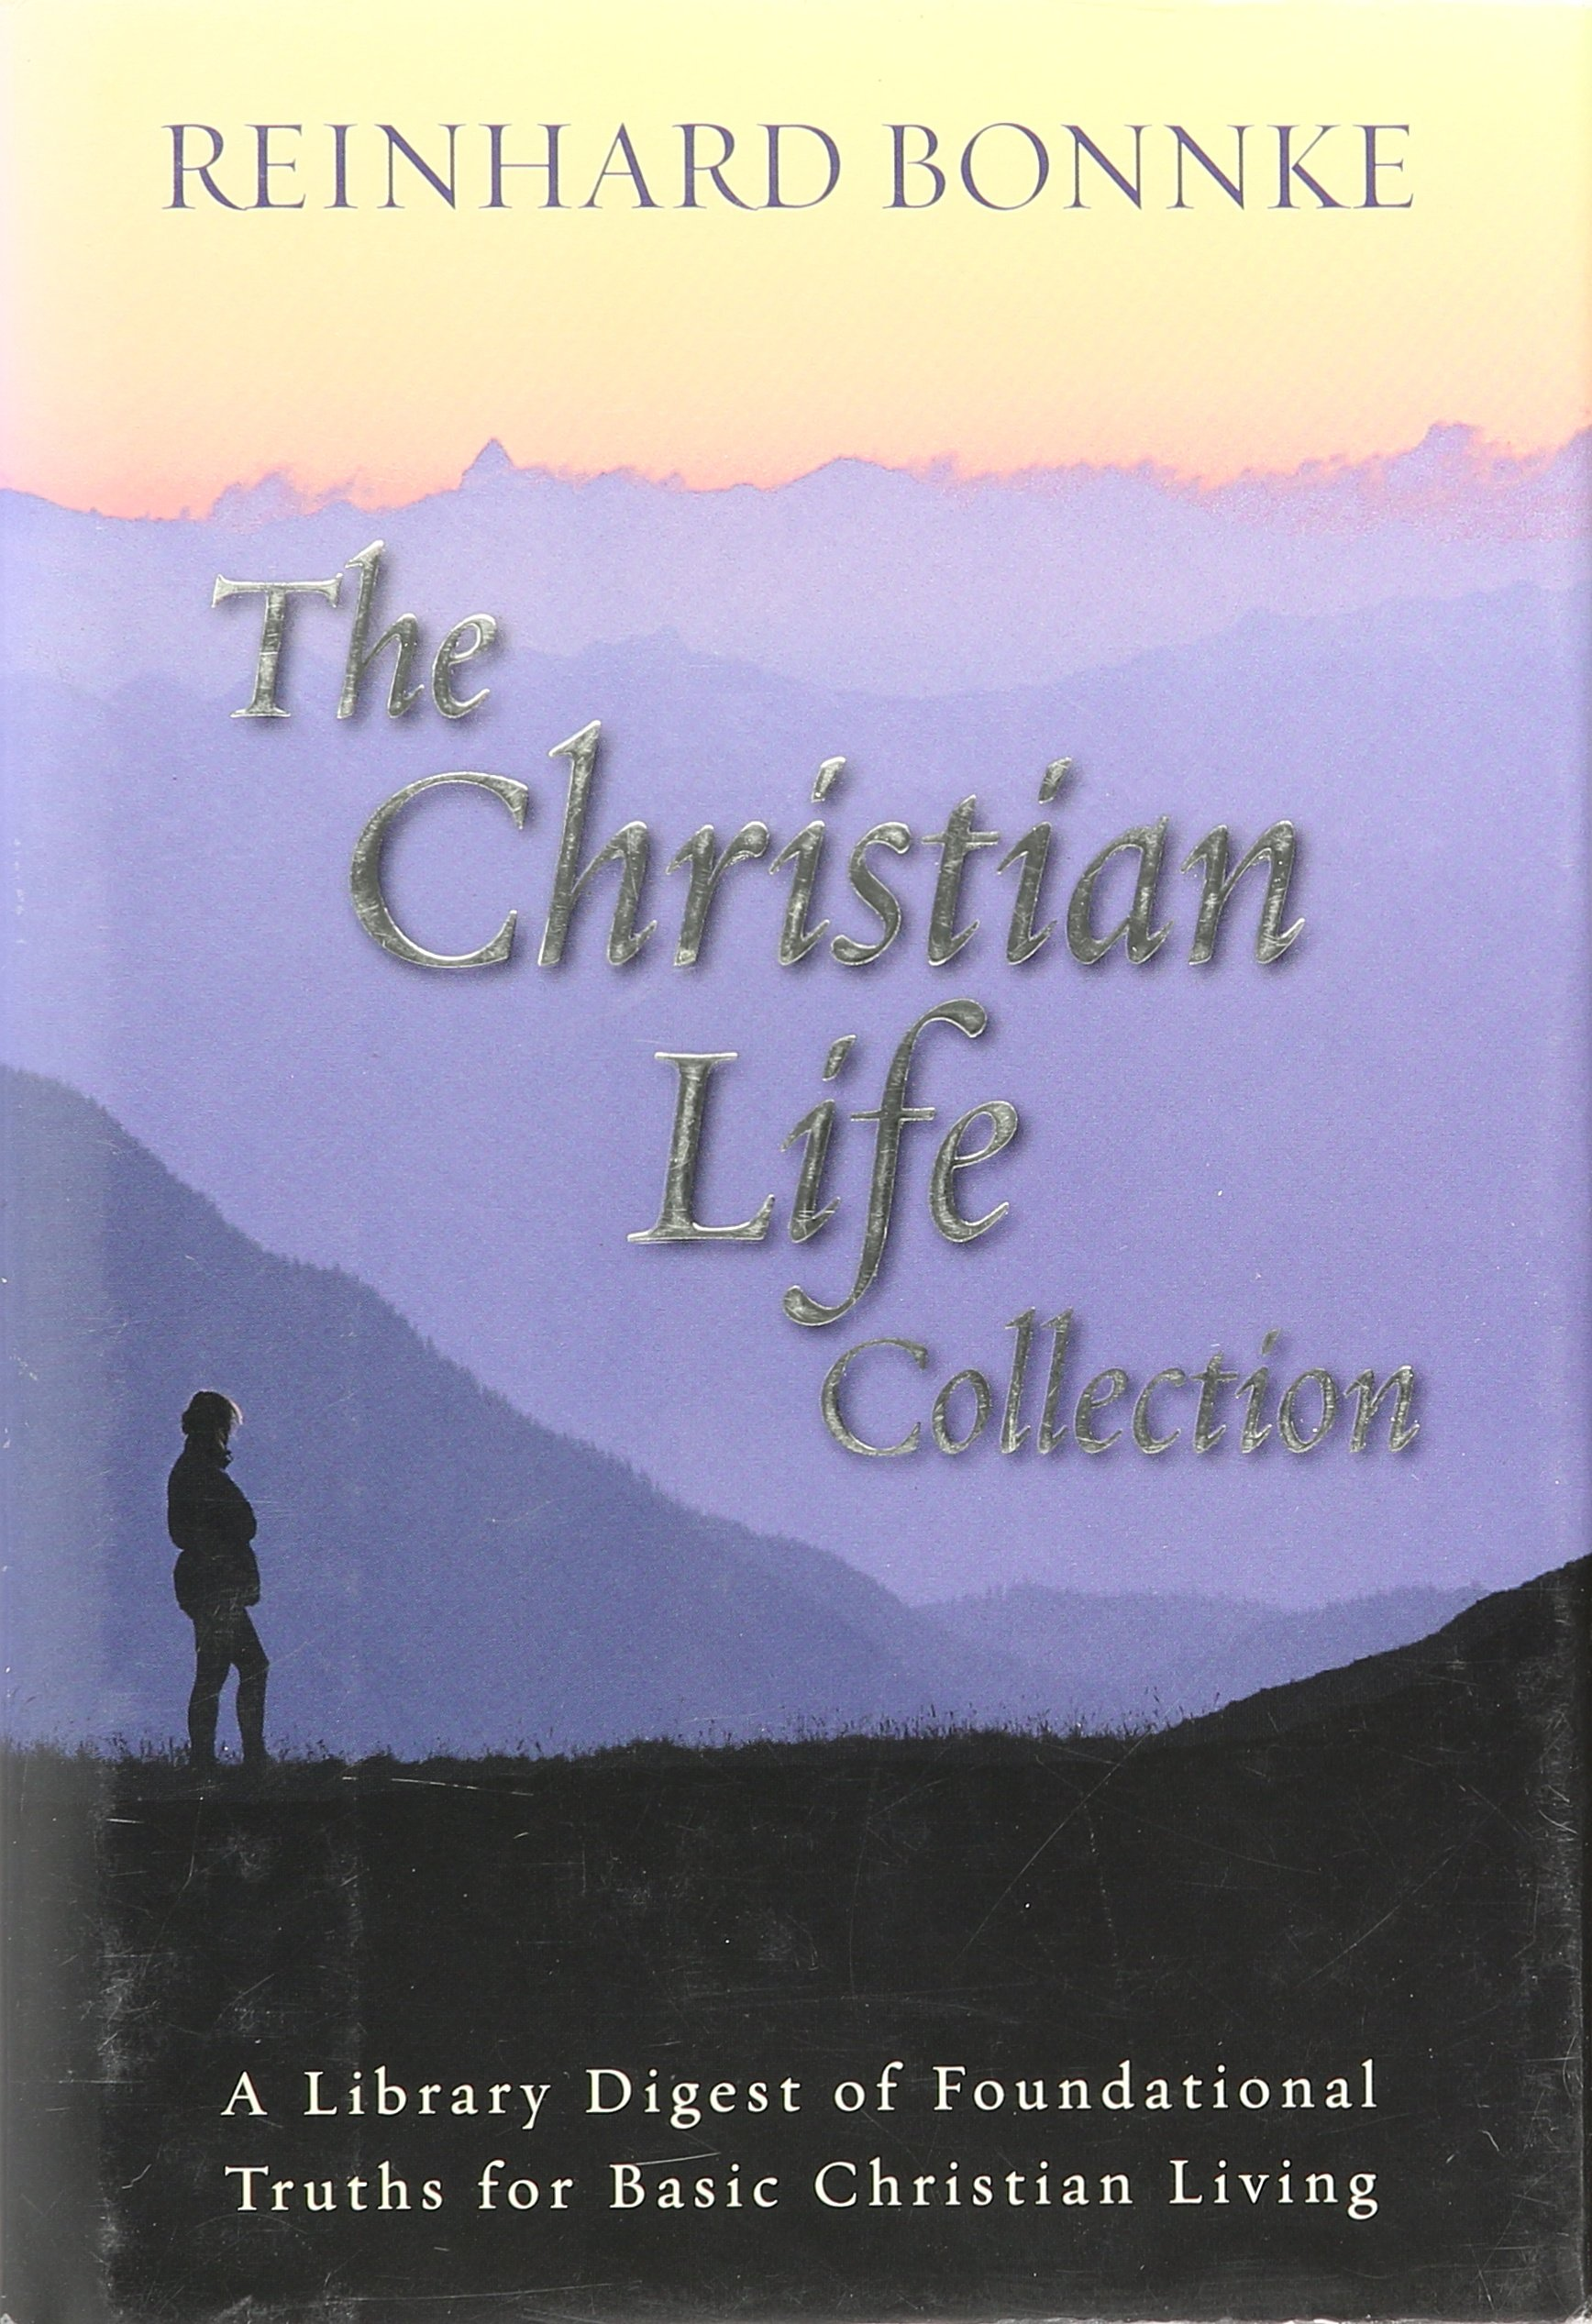 Download The Christian Life Collection: A Library Digest of Foundational Truths for Basic Christian Living. ebook